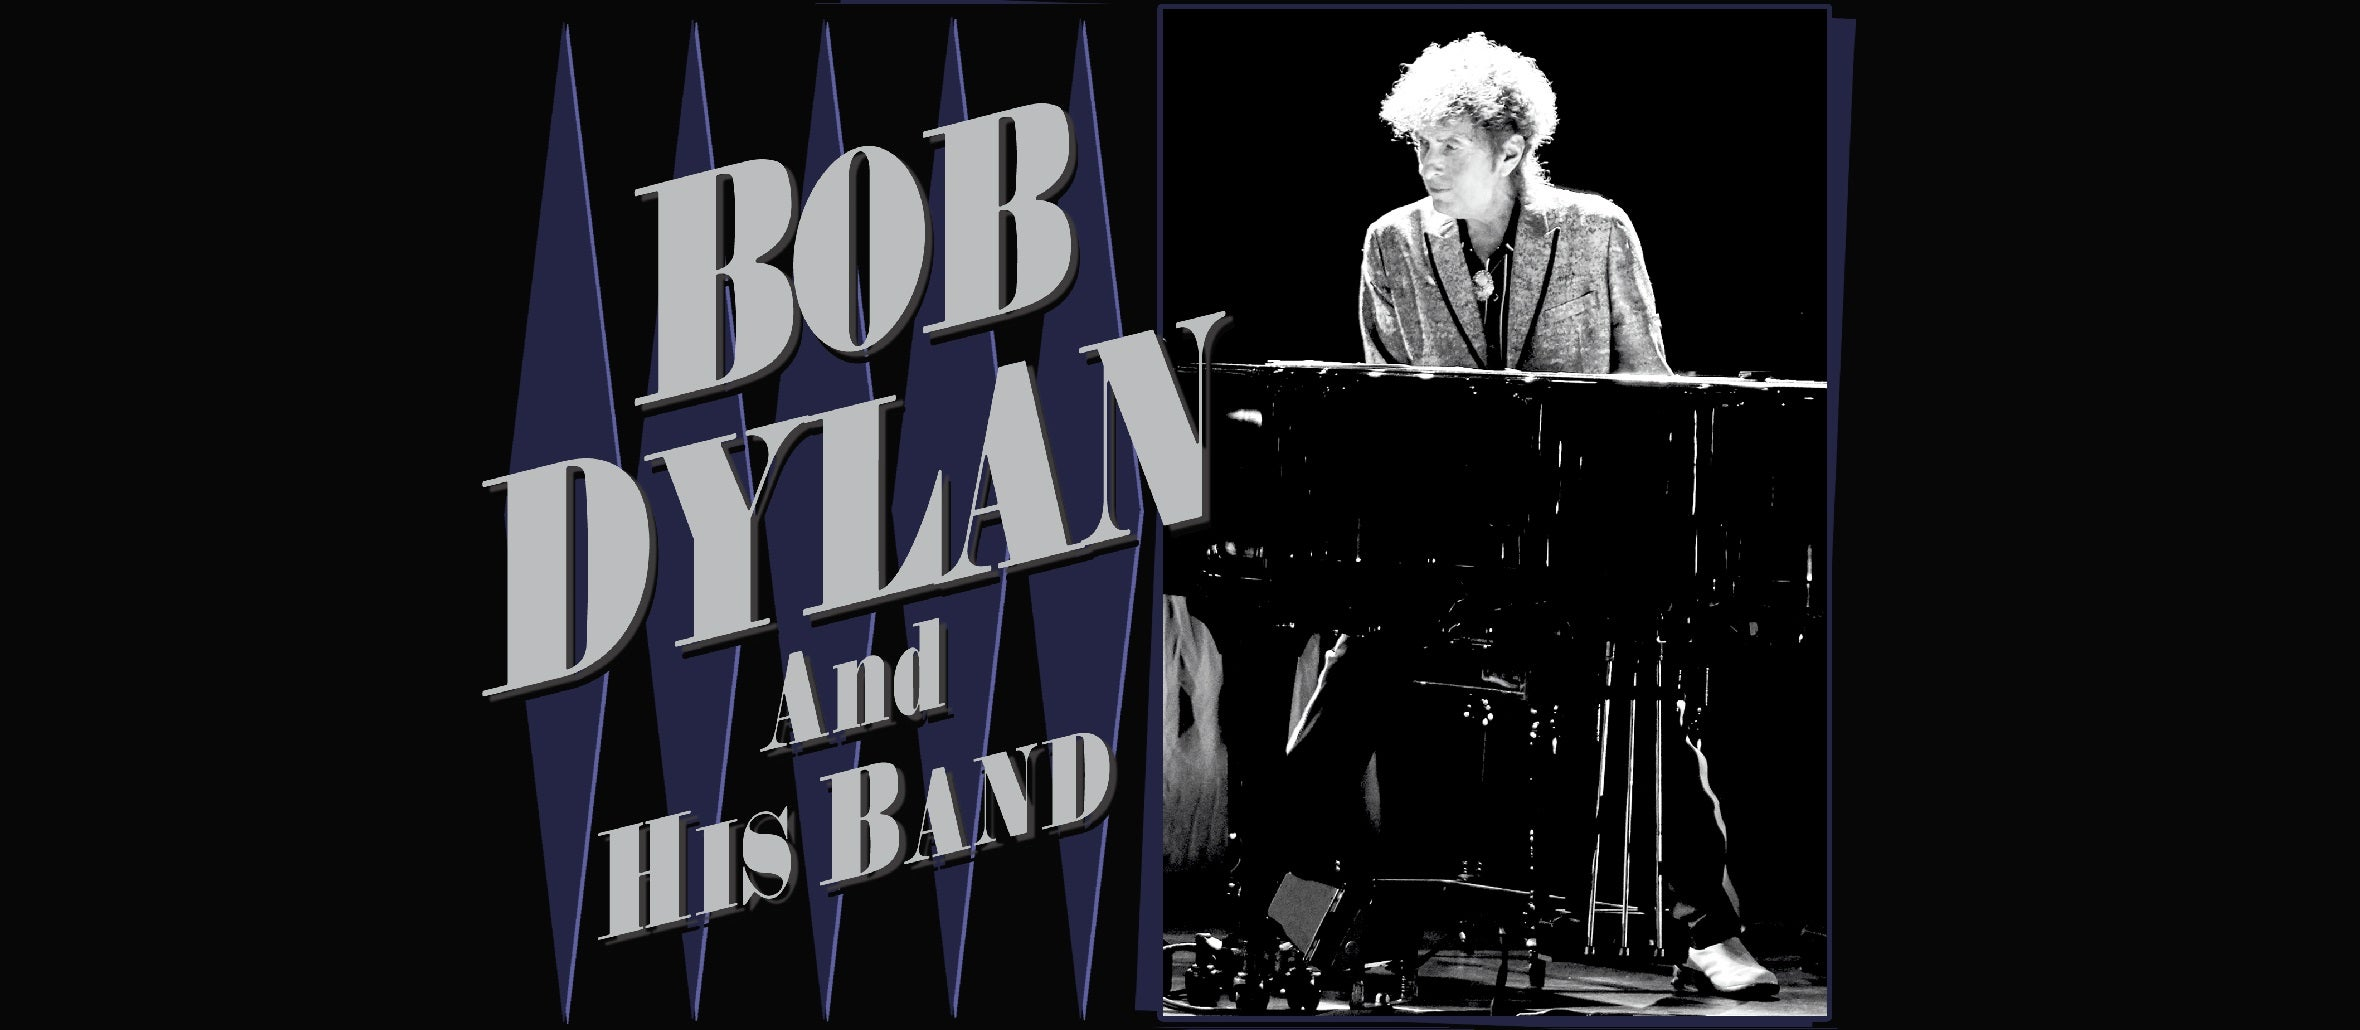 Bob Dylan and His Band